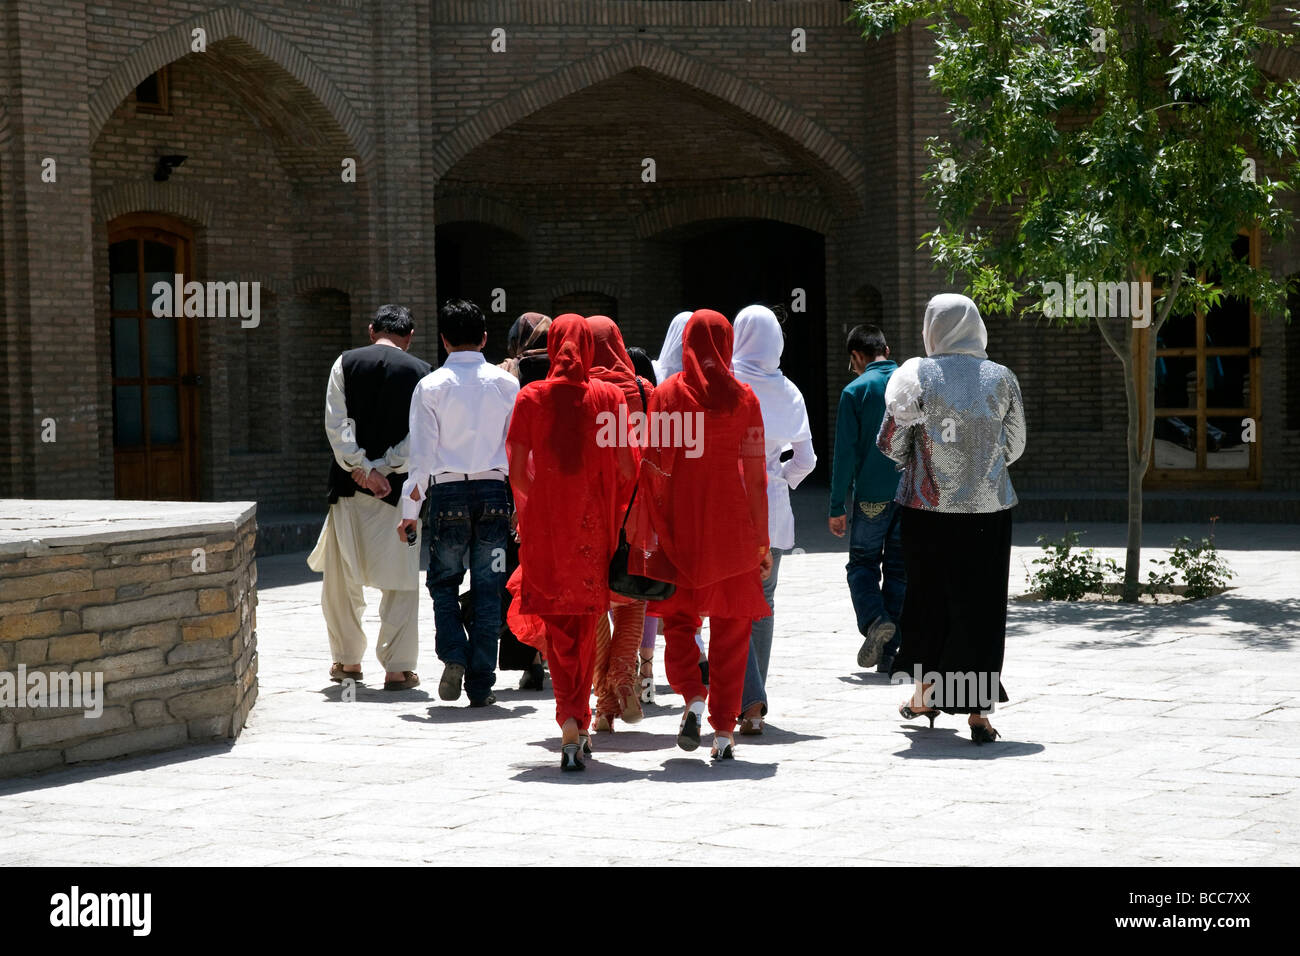 A prosperous Muslim family in Kabul leaving Babur's Gardens; bright red clothes indicate the daughters are unmarried - Stock Image